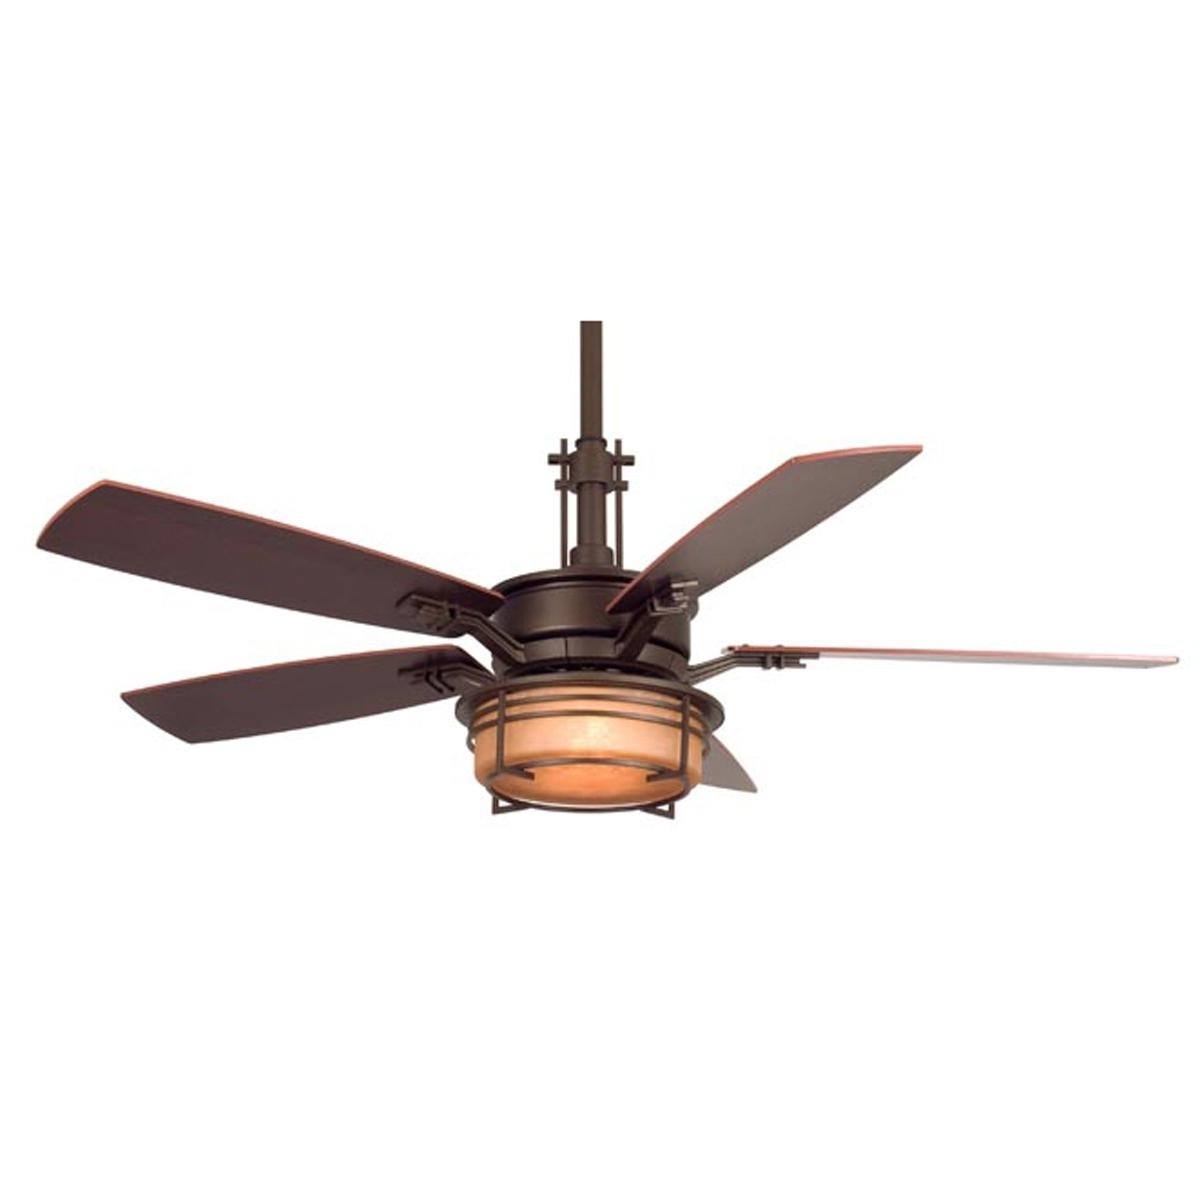 Mission Style Outdoor Ceiling Fans With Lights In 2018 Mission Style Ceiling Lights Fan With Light Big Led Outdoor Flush (View 10 of 20)